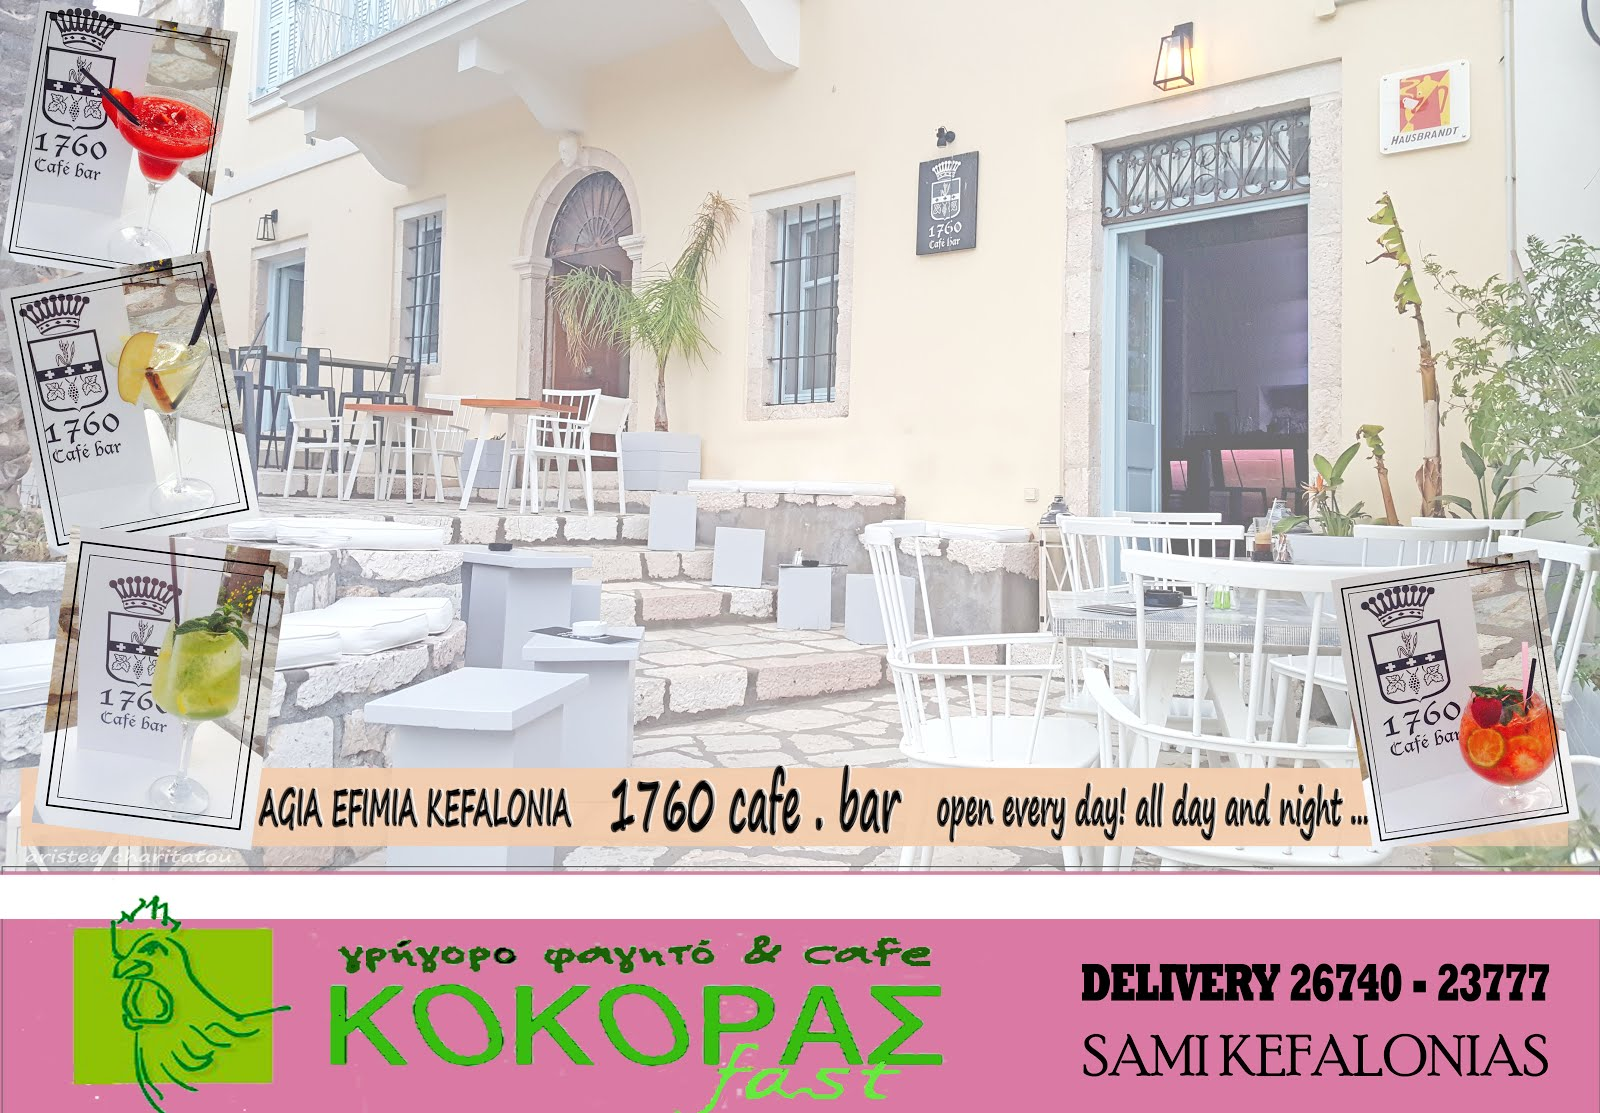 1760 cafe-bar Agia Efimia